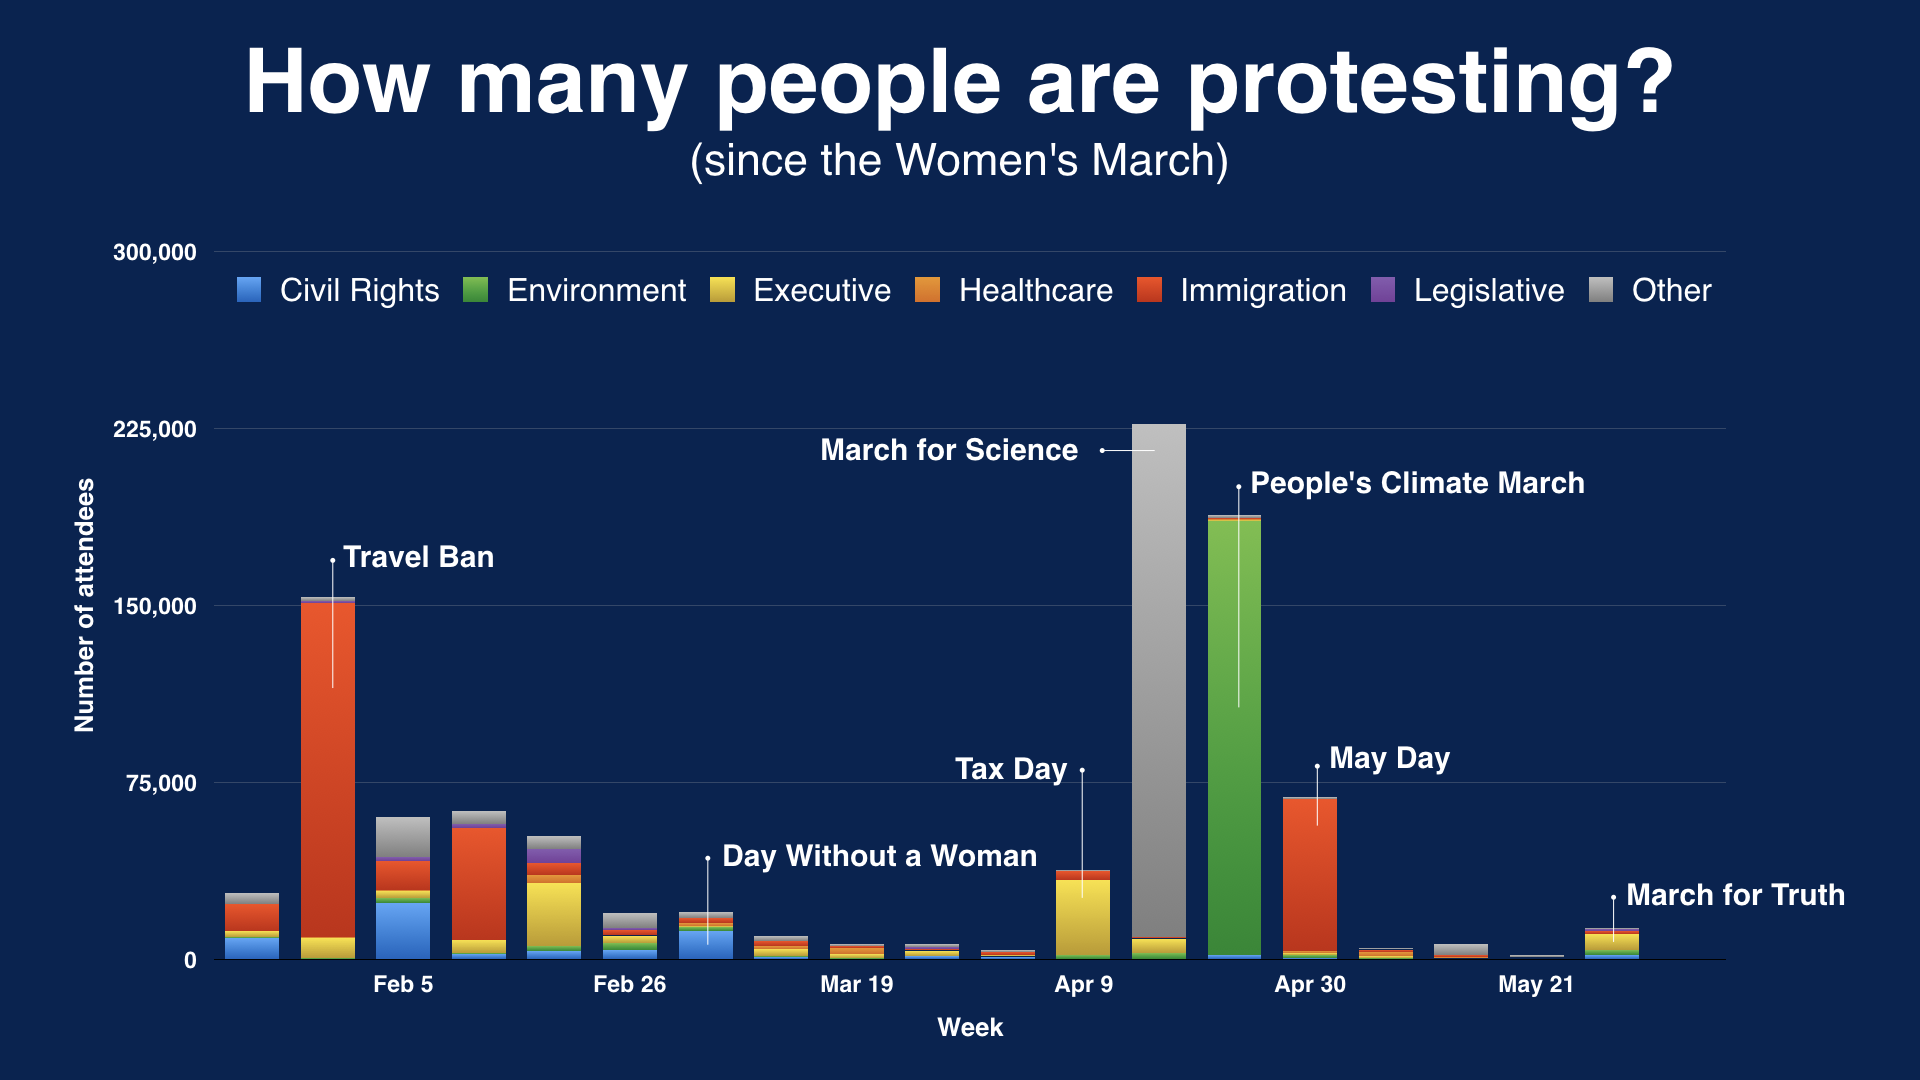 Number of protesters per week since the Women's March.